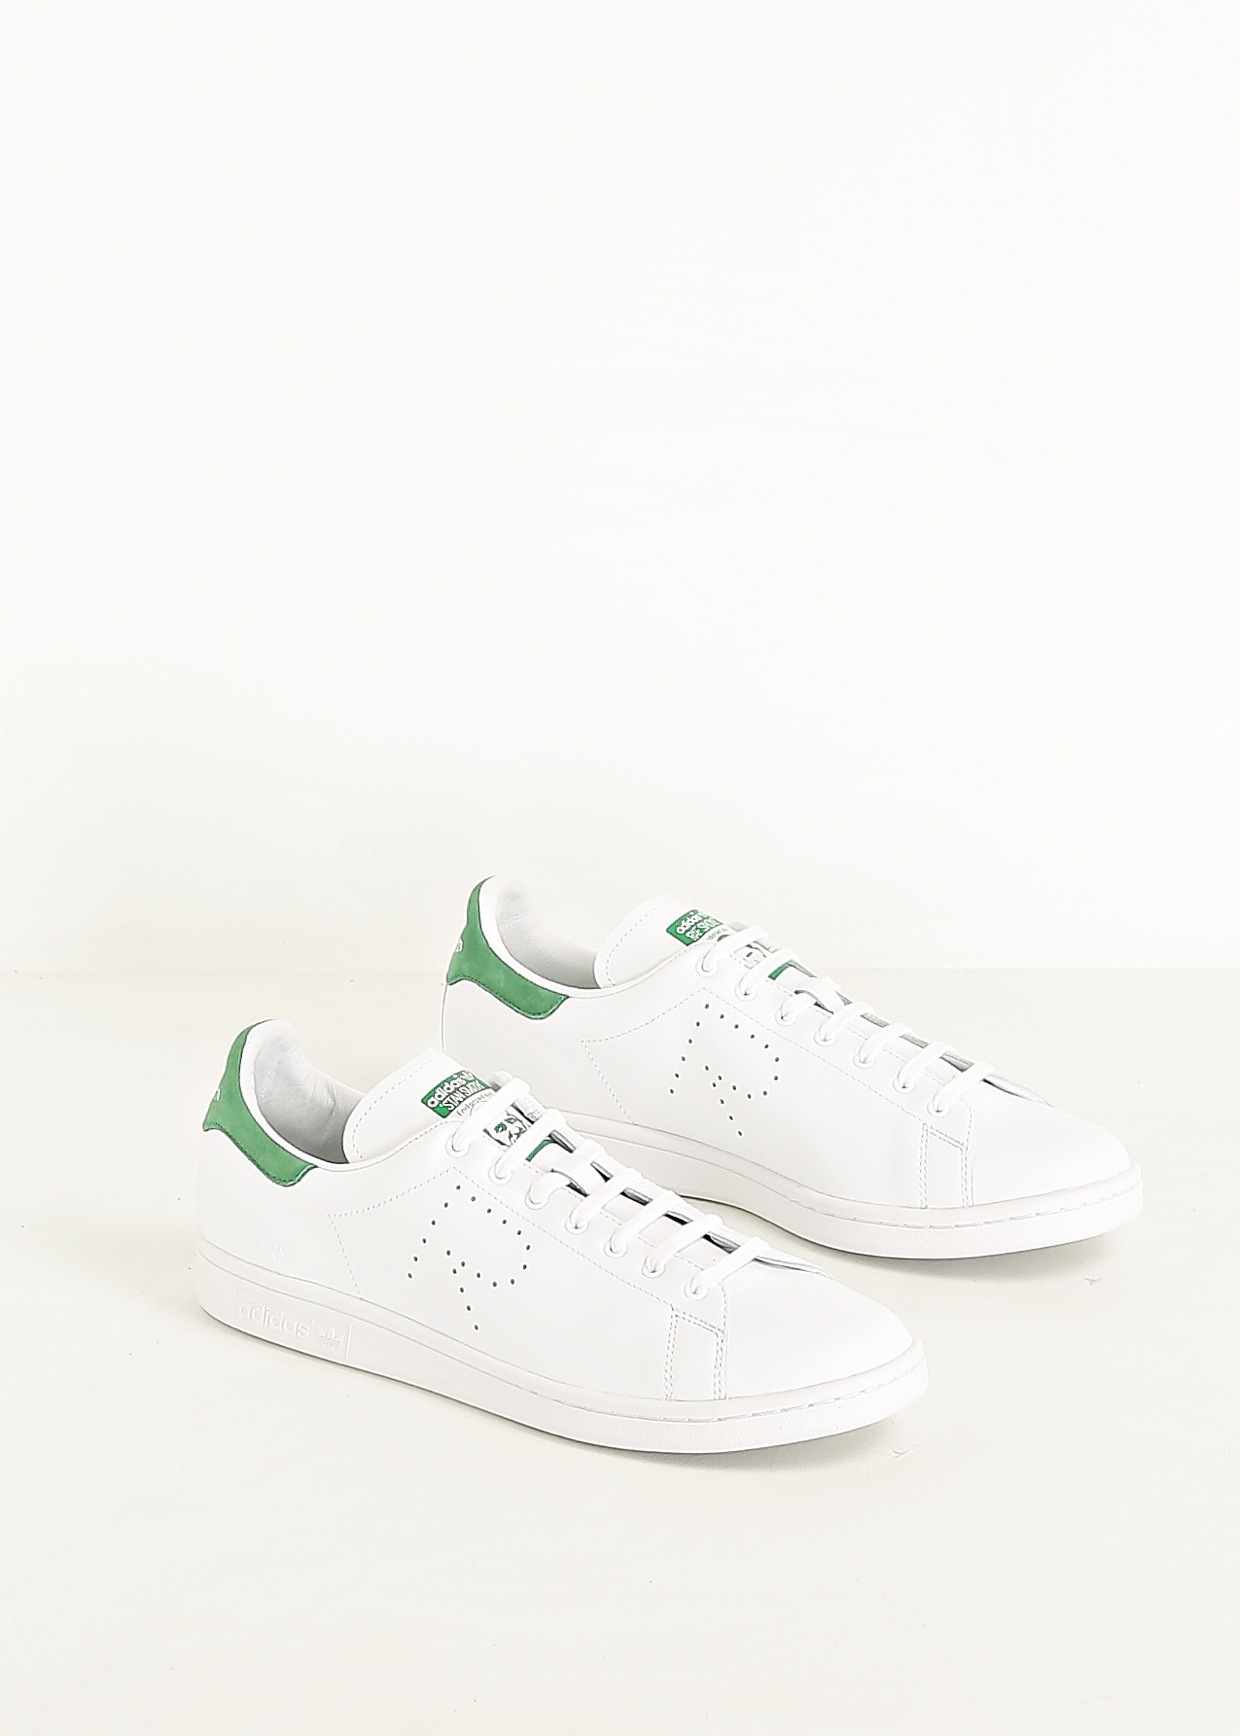 ADIDAS ORIGINALS × RAF SIMONS Stan Smith White #sneakers #fashion #rafsimons